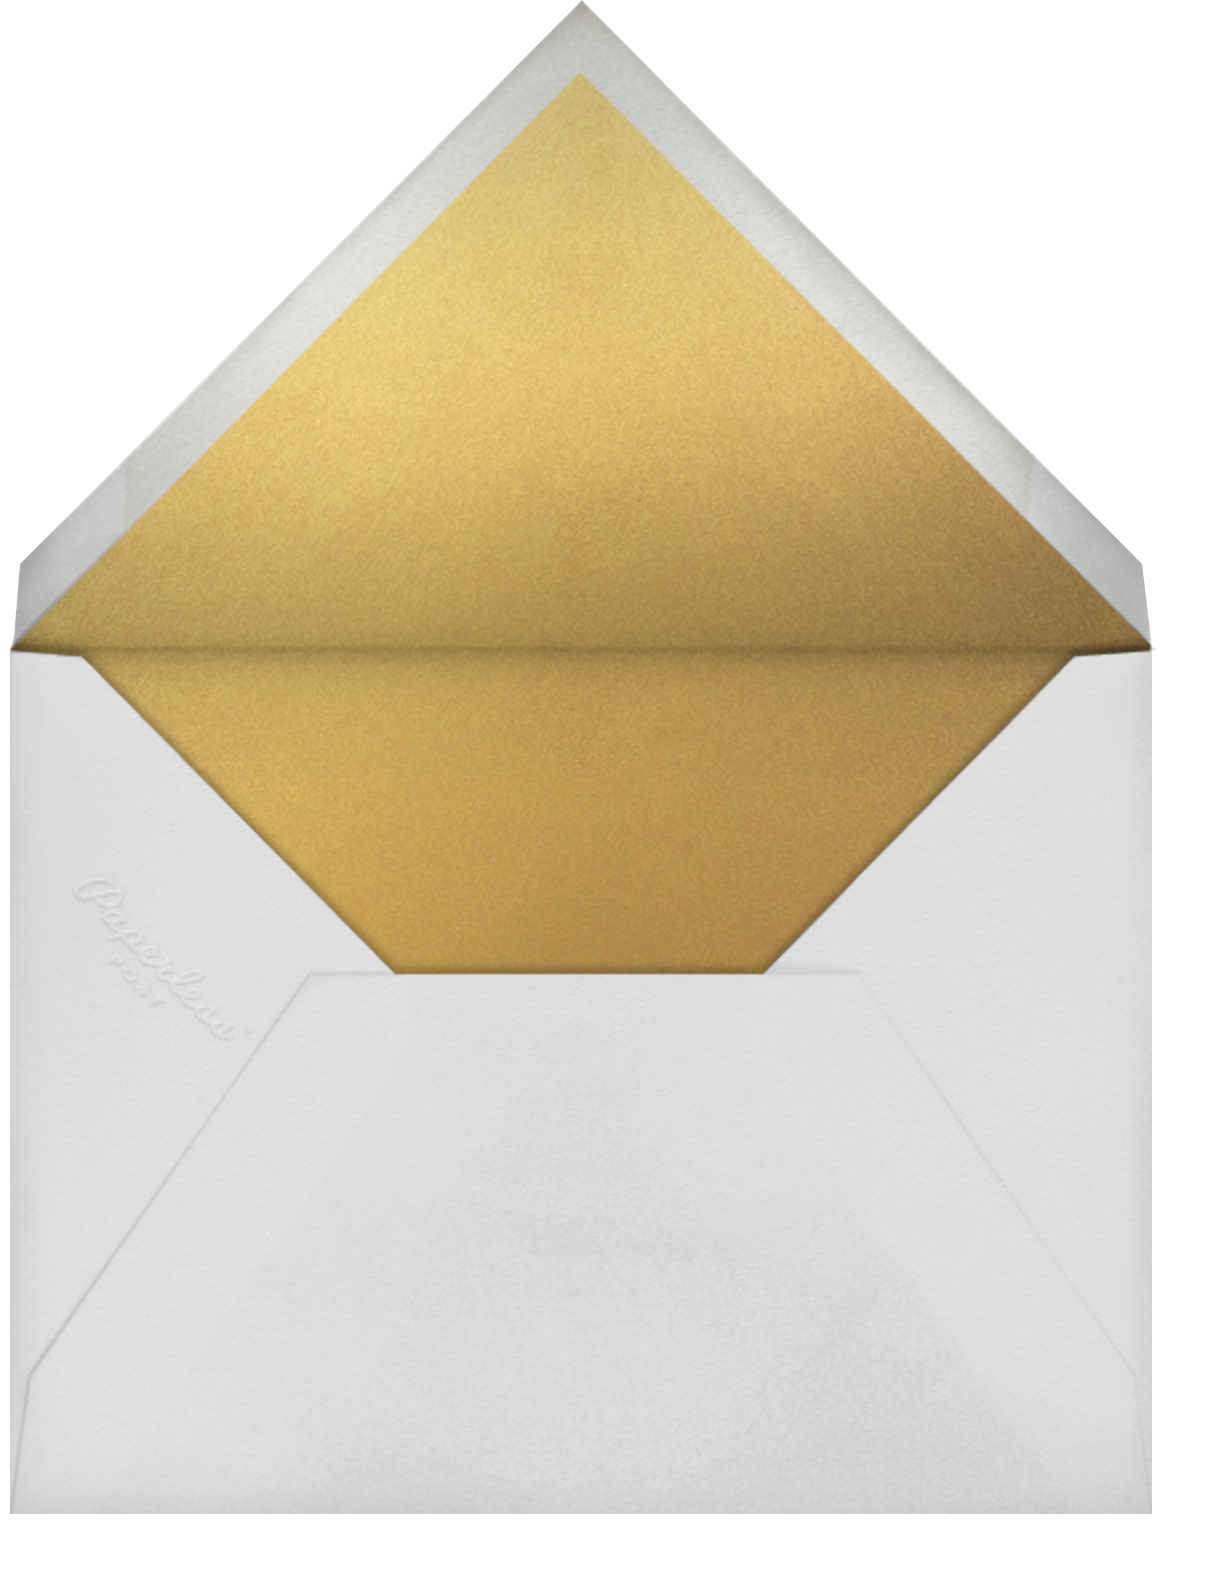 Shining Gold - Engagement - Paperless Post - Engagement party - envelope back